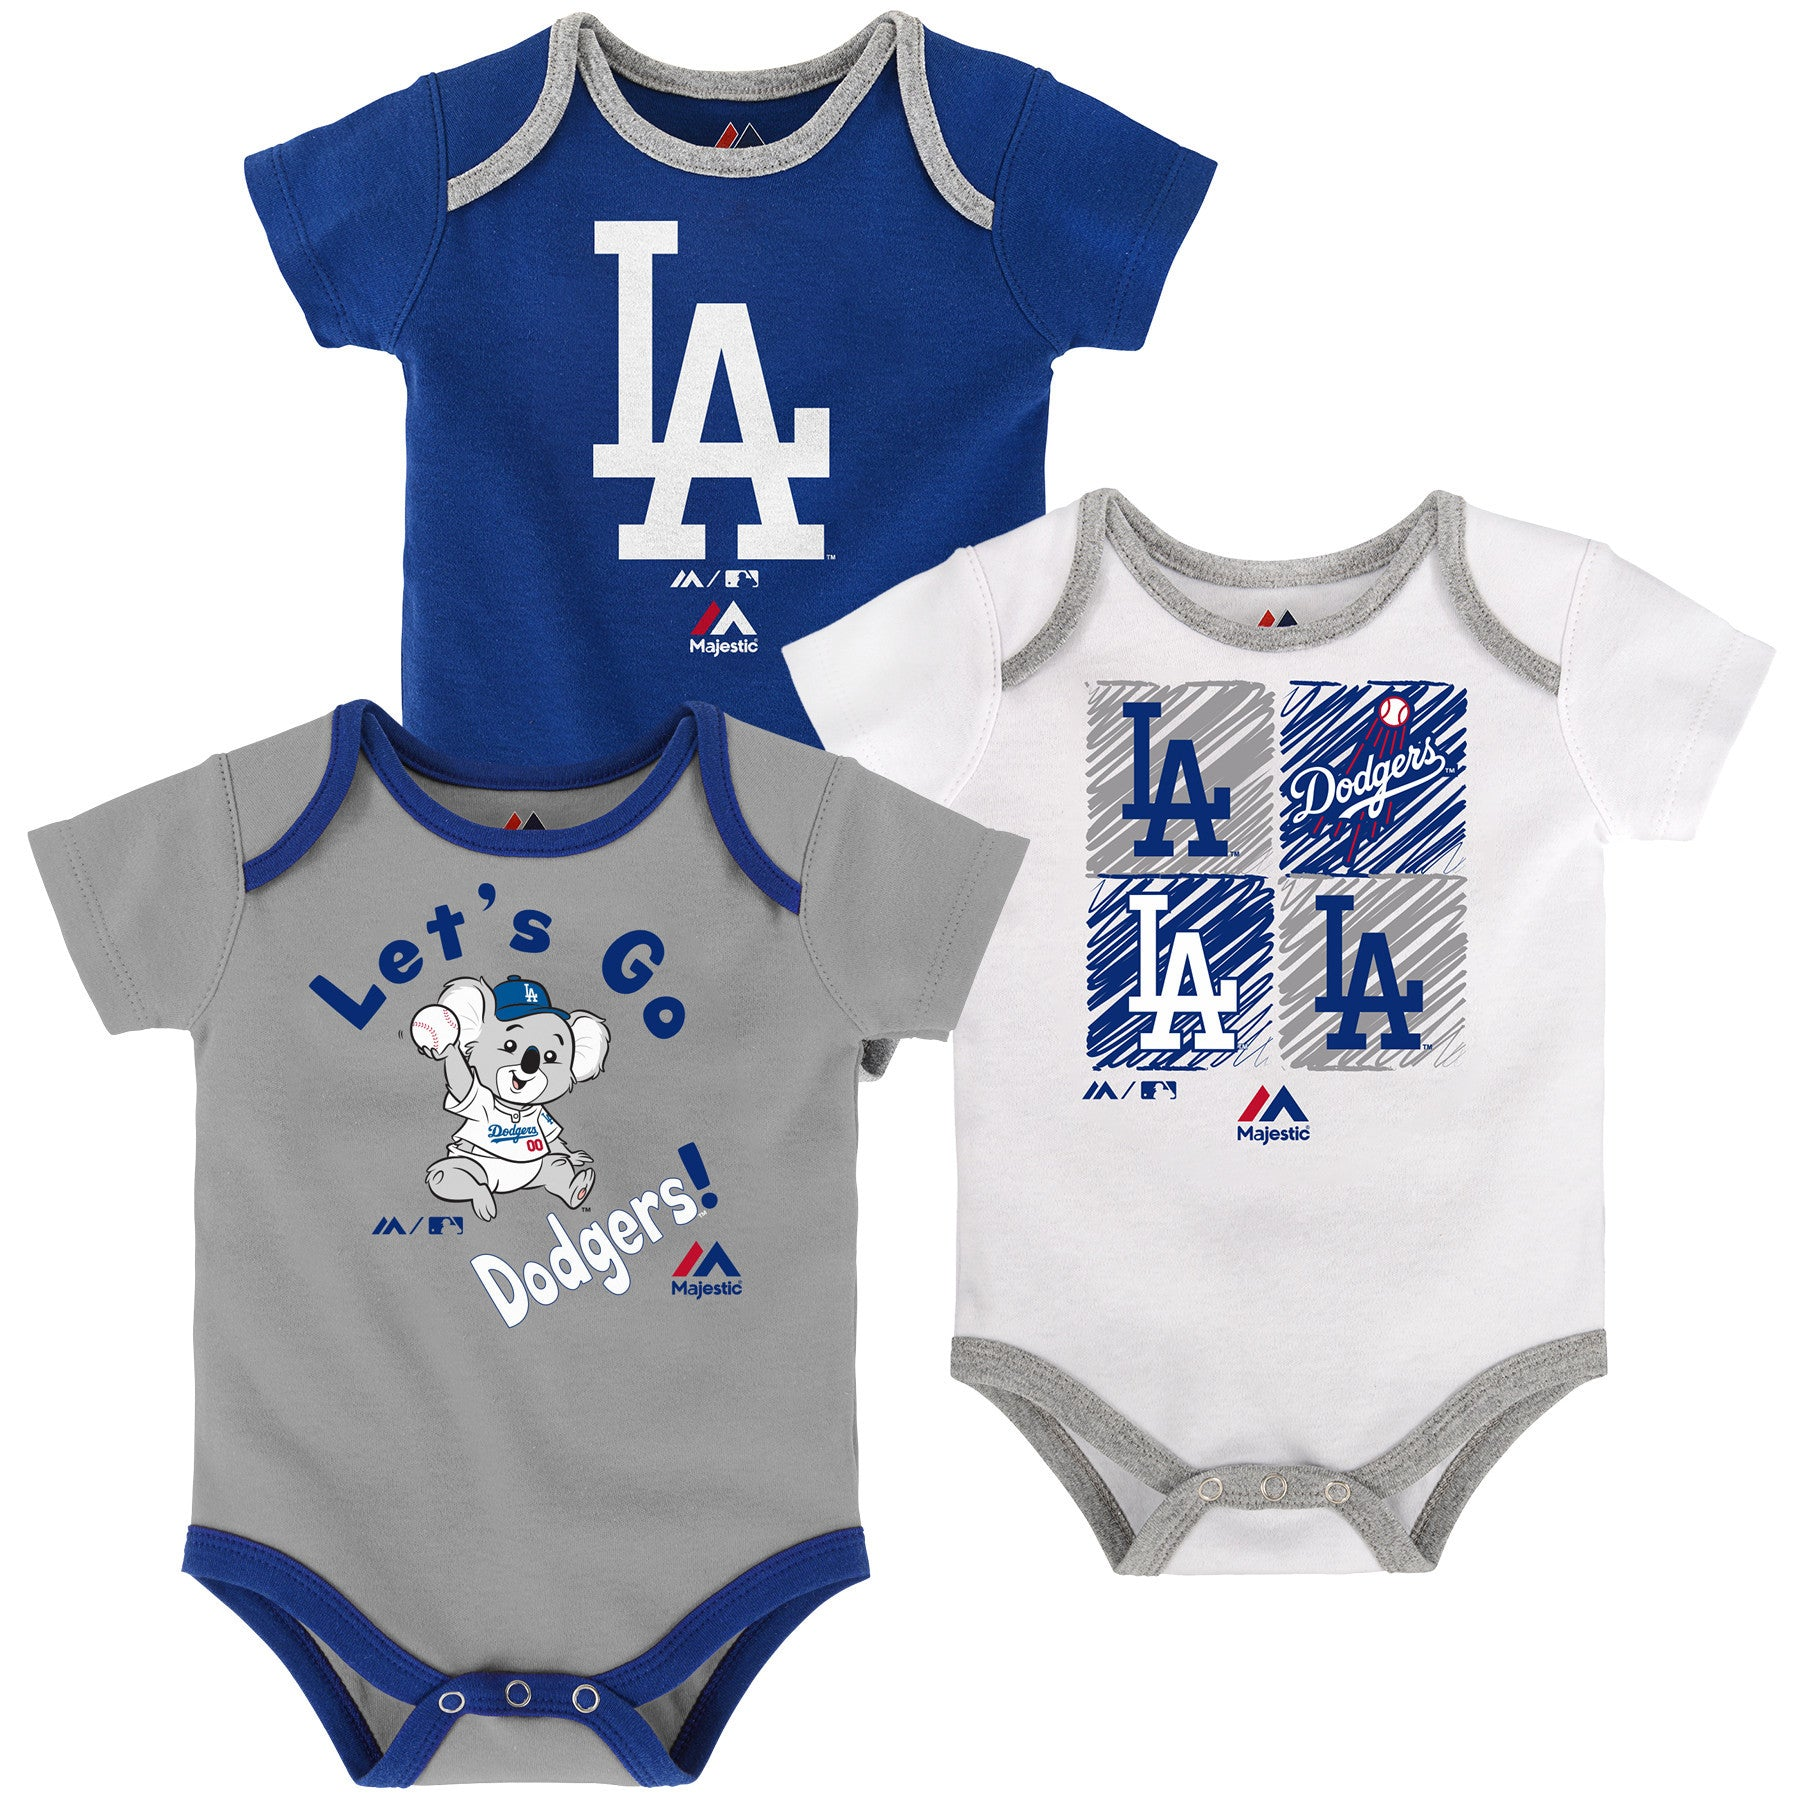 Los Angeles Dodgers Baby Clothing BabyFans – babyfans